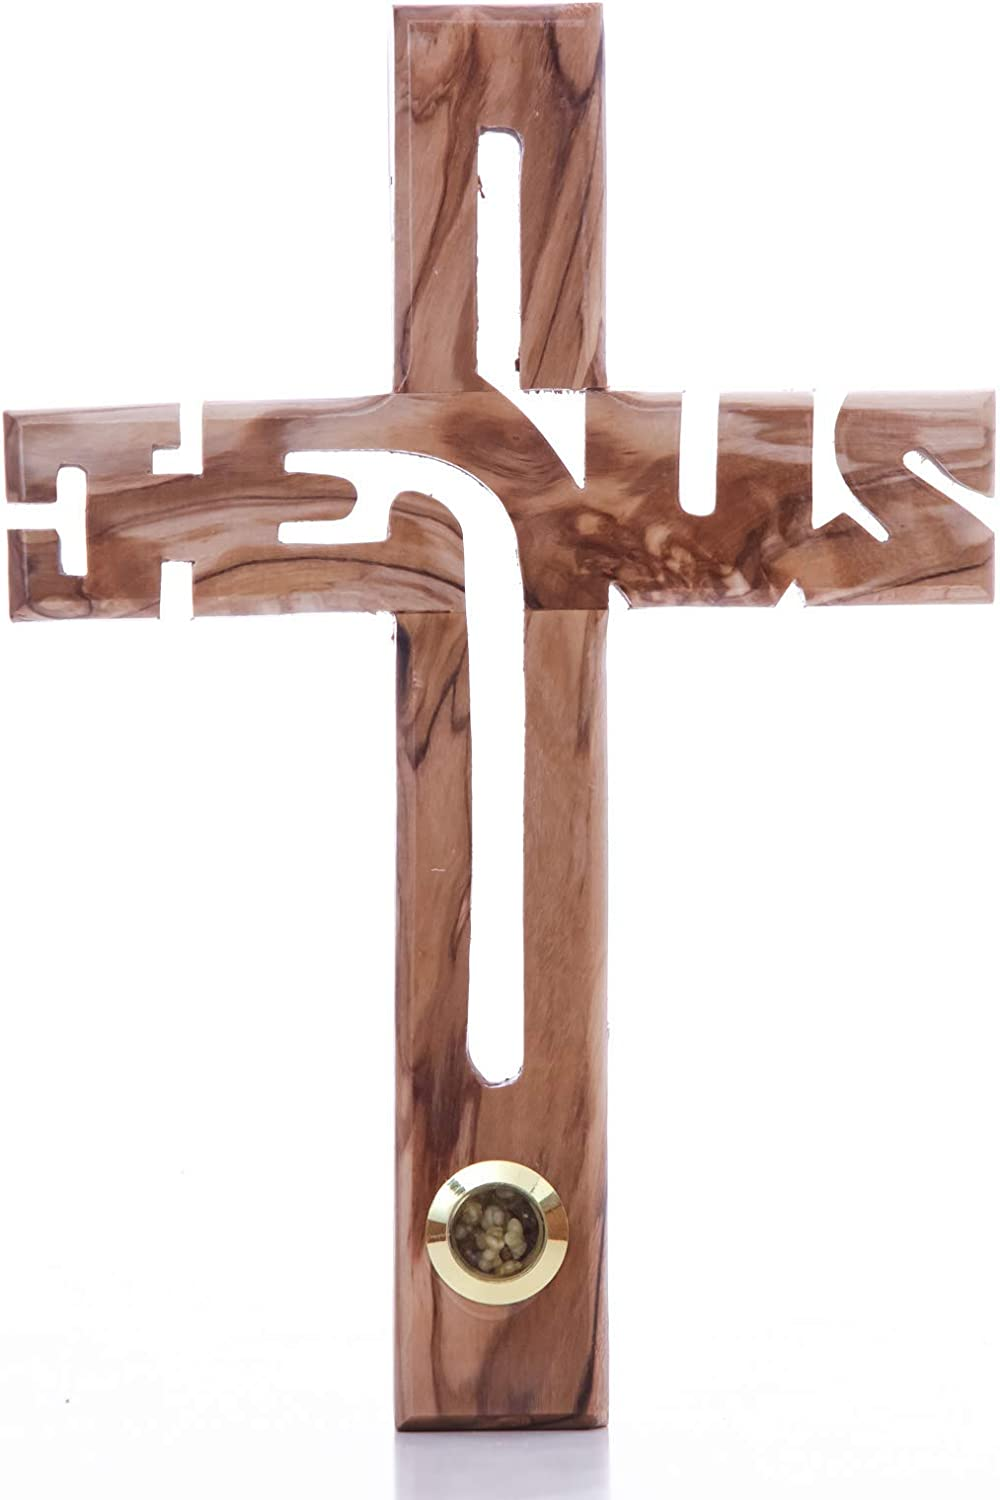 Zuluf Jesus Cross for The Wall for Home, Office or Kids Room | Wooden Cross Decor Christian Handmade Jesus Olive Wood Wall Cross with Soil Bethlehem with Holy Land Certificate | 7.8